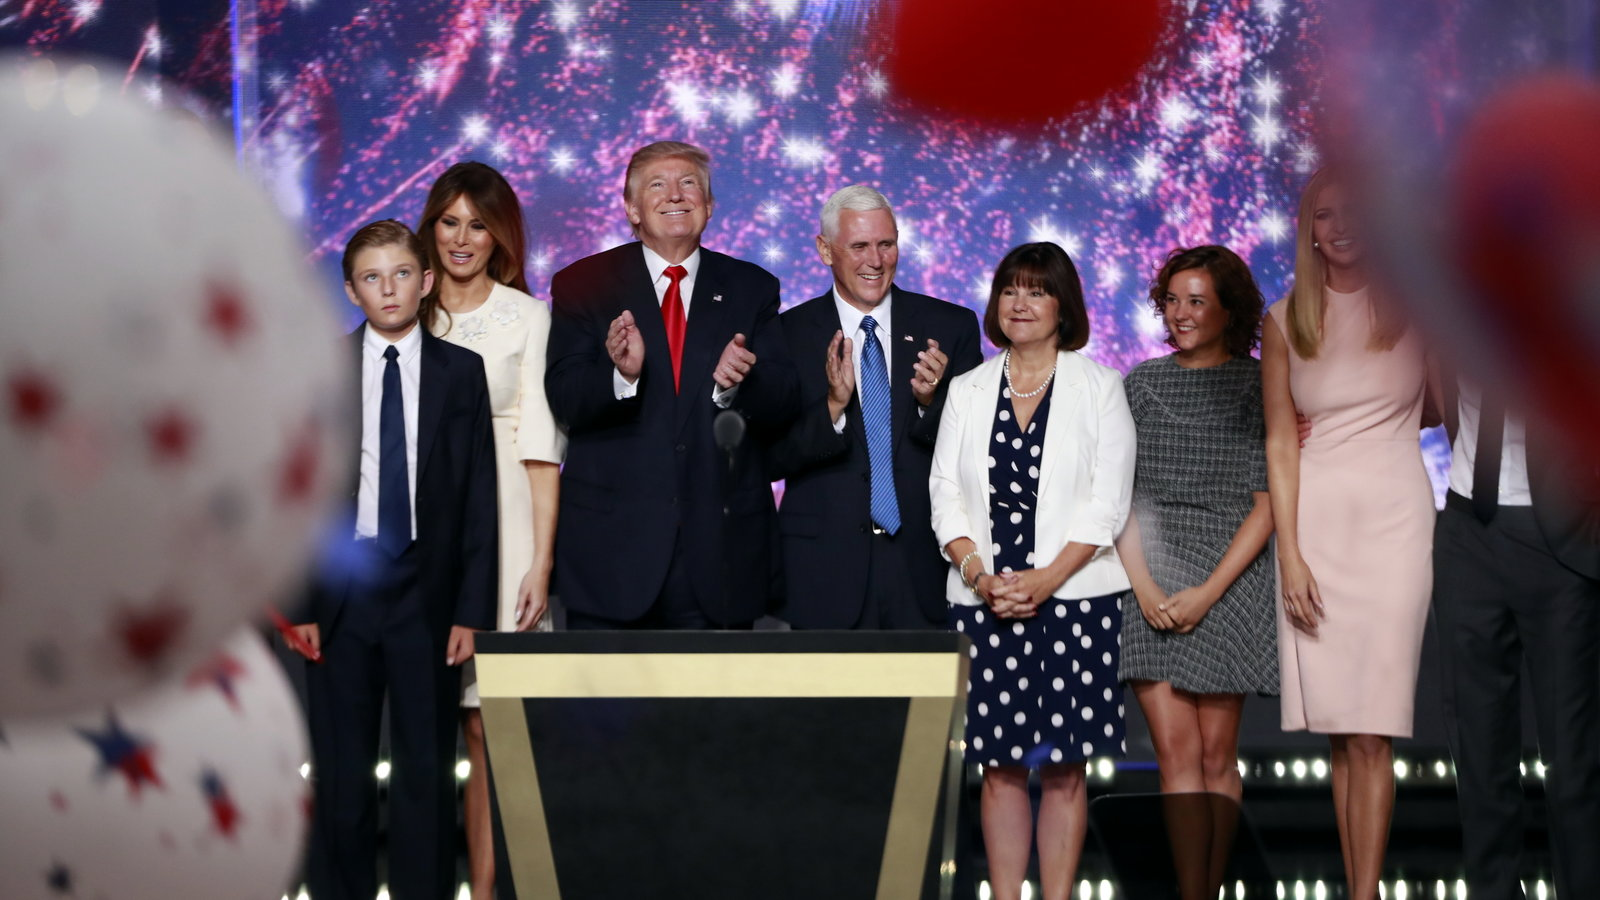 Trump is Stockholm to my syndrome: Day 4 of GOP convention